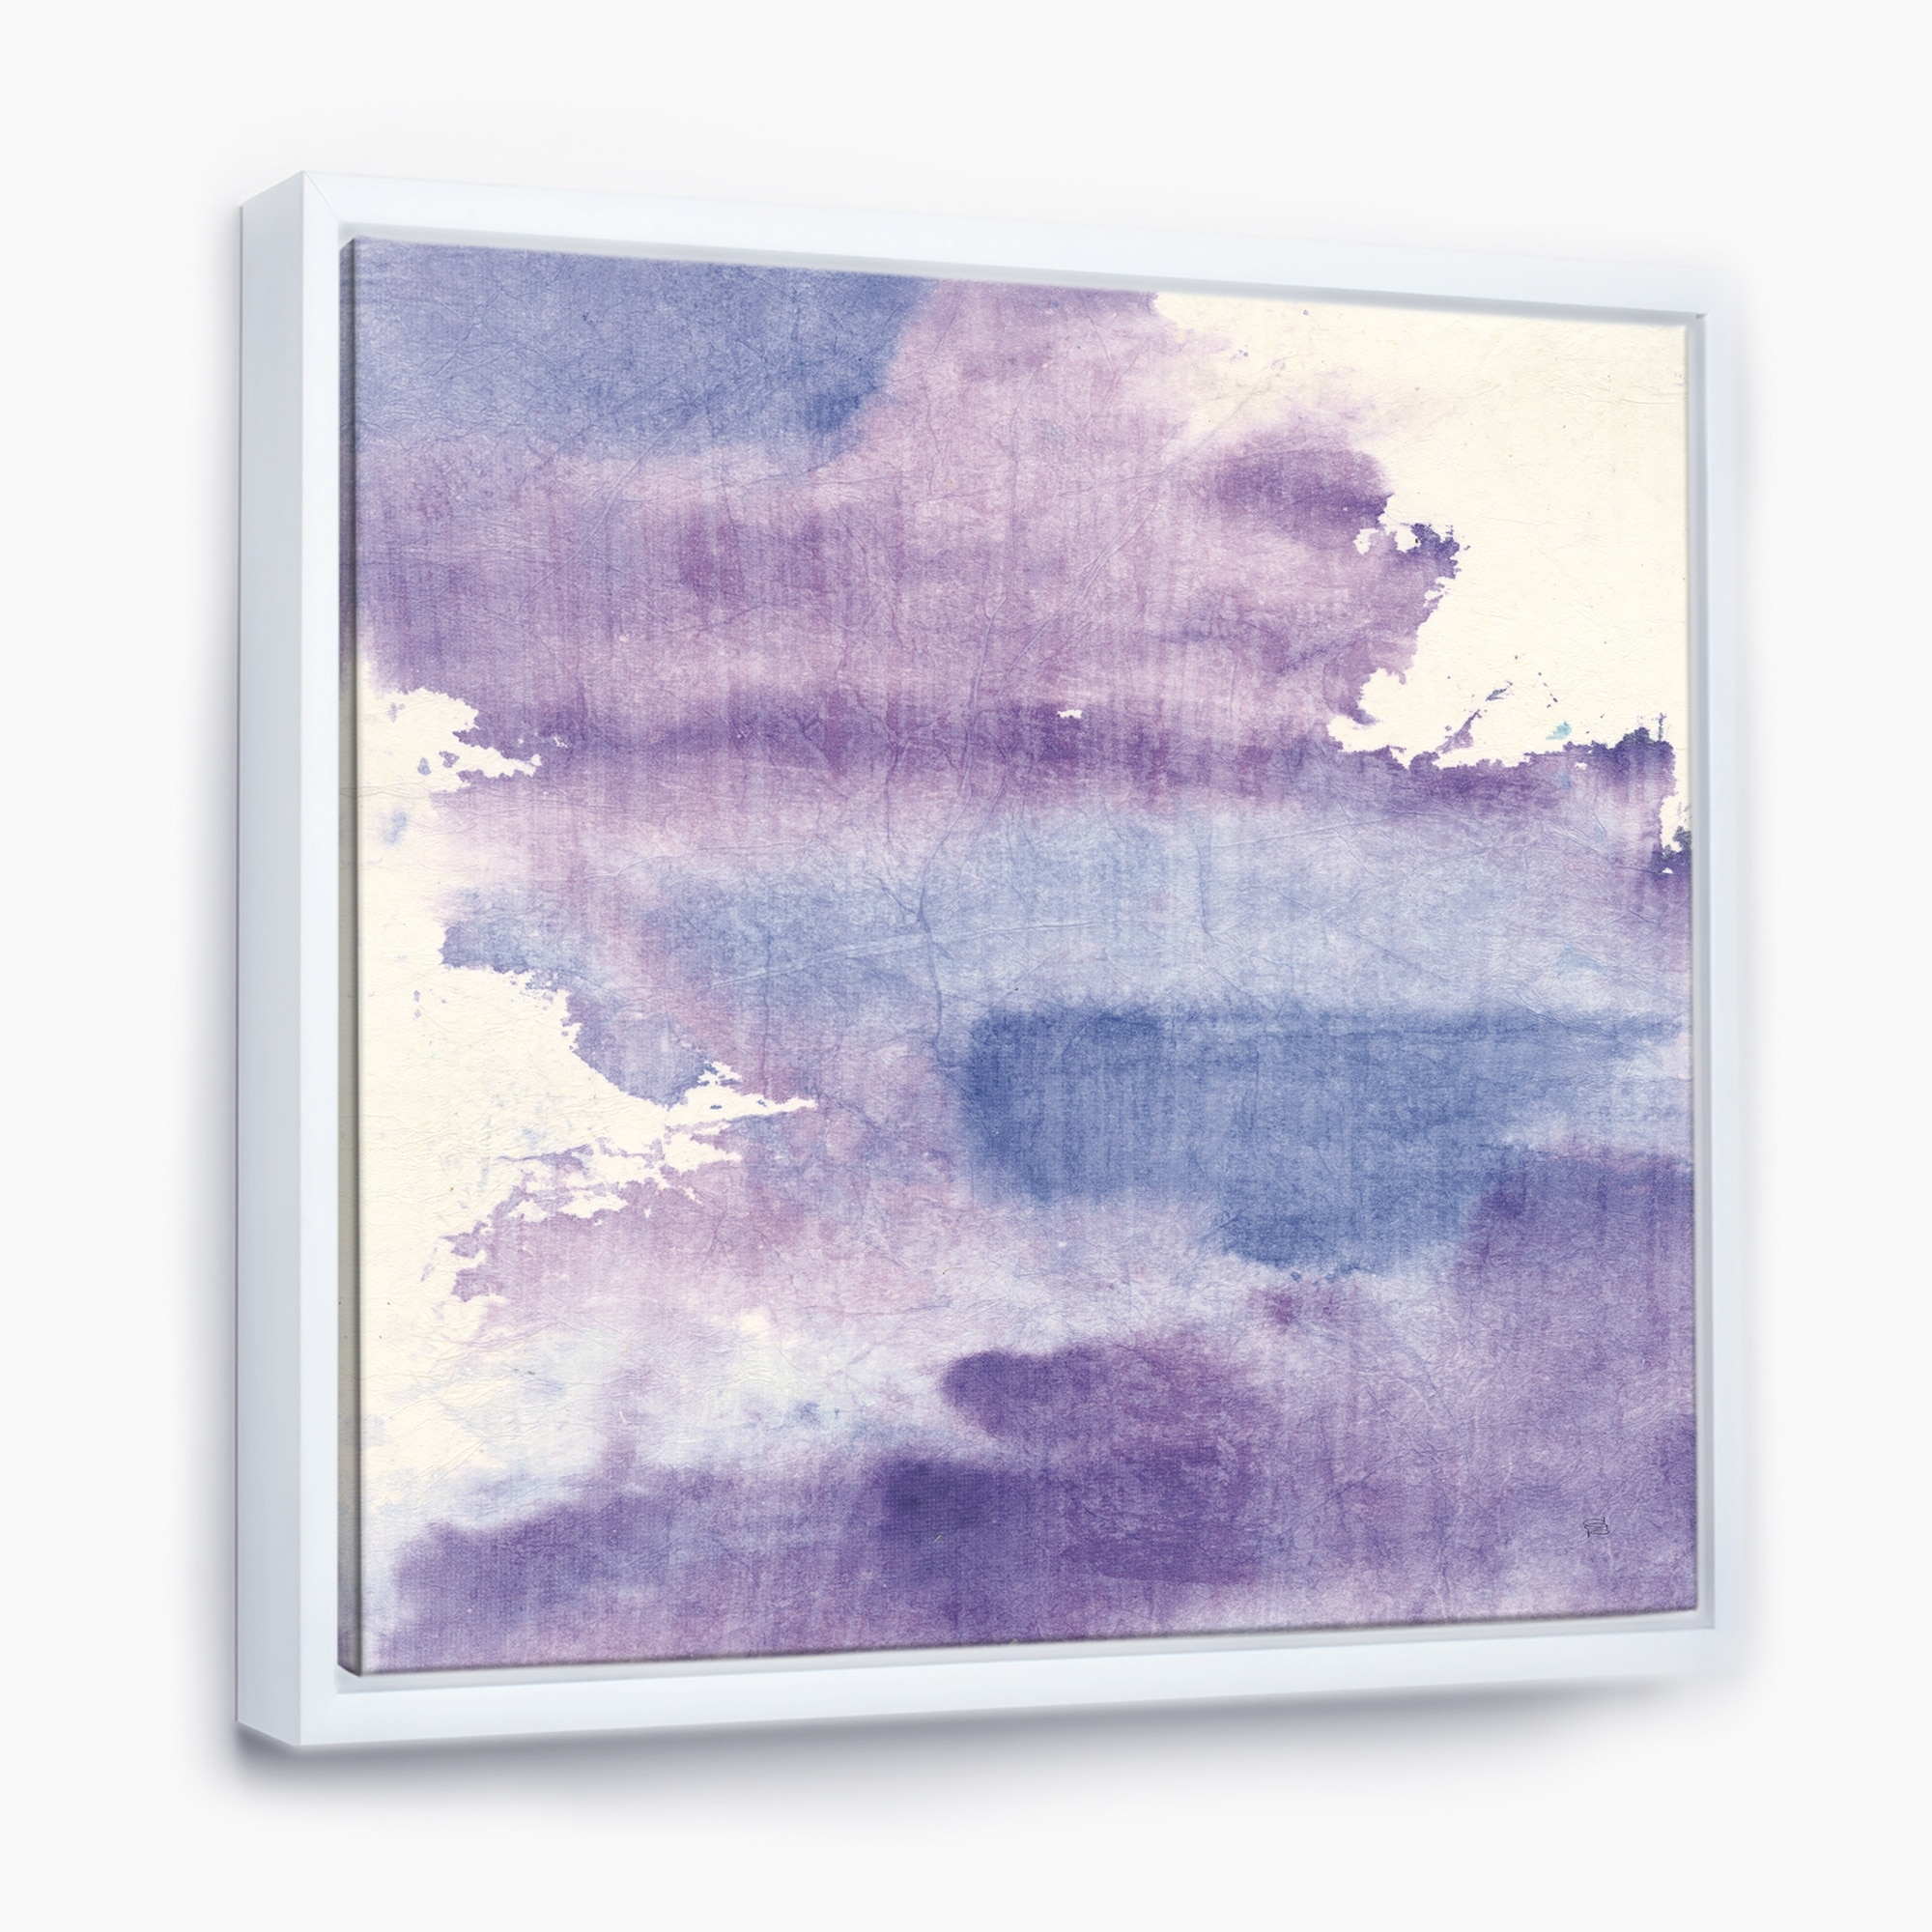 Designart Watercolor Purple Haze I Modern Contemporary Framed Canvas Overstock 25980850 30 In Wide X 30 In High Gold